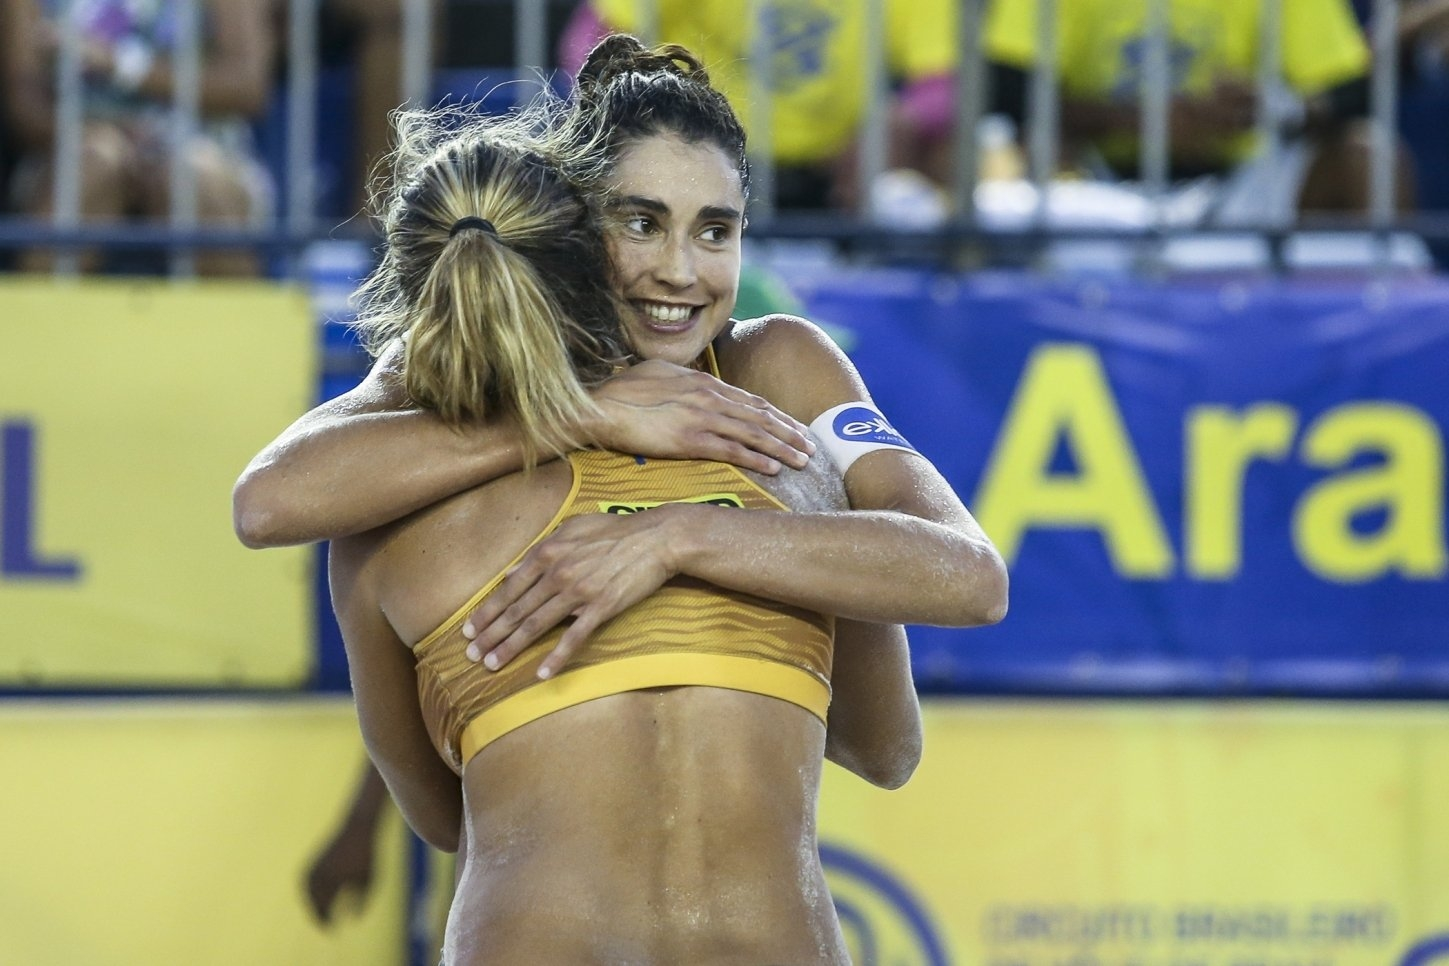 Carol Solberg and Maria Antonelli celebrate their first national title together (Photocredit: CBV)